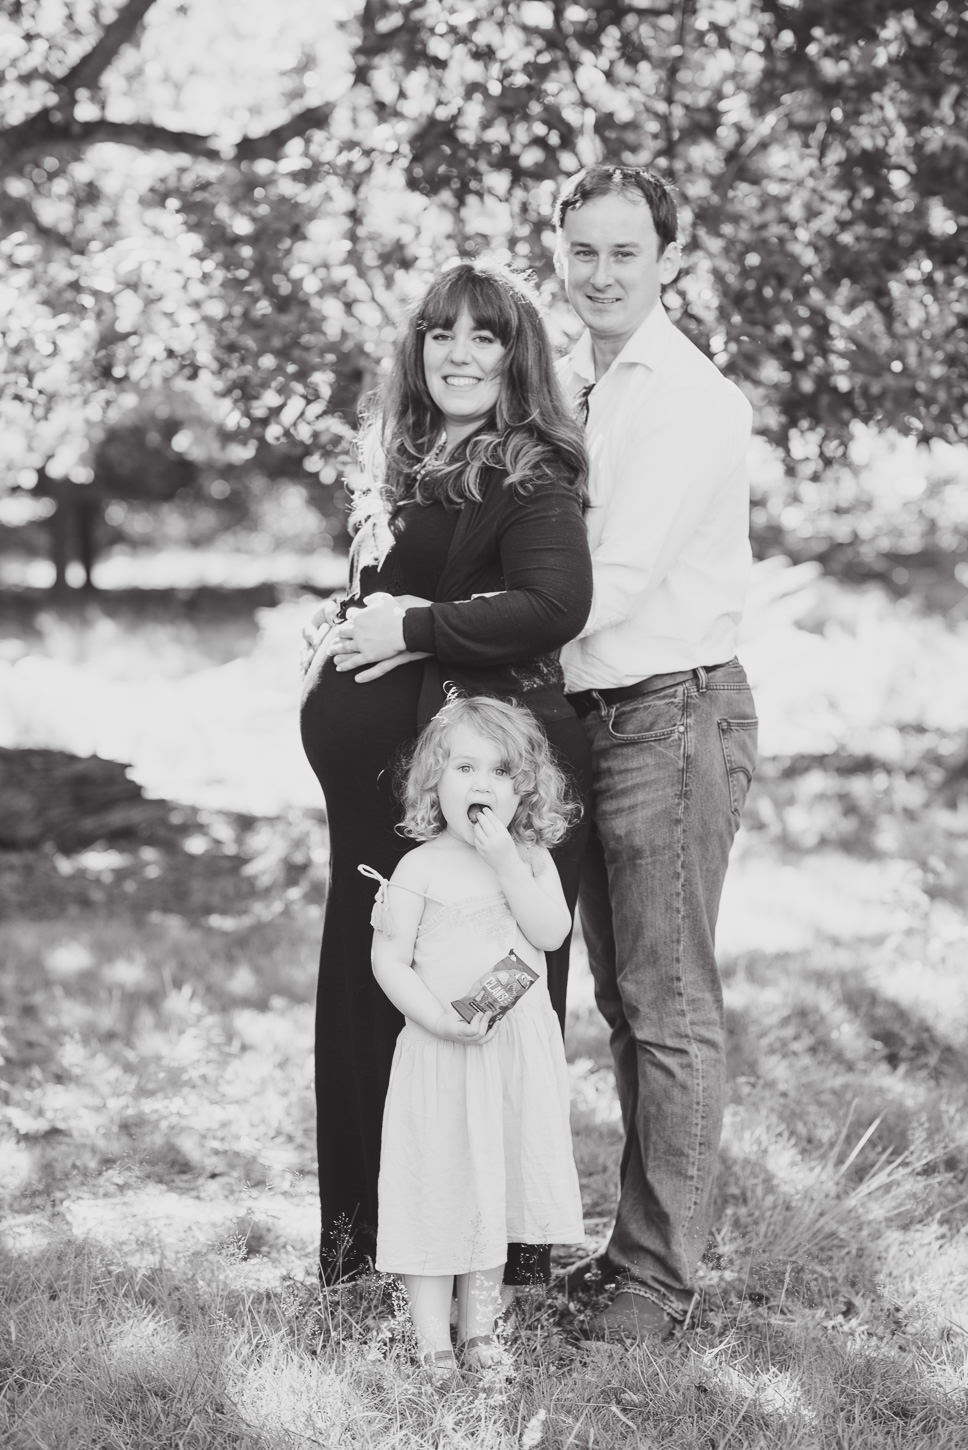 Maternity-family photography tunbridge wells and sevenoaks -Susan Arnold Photography-15